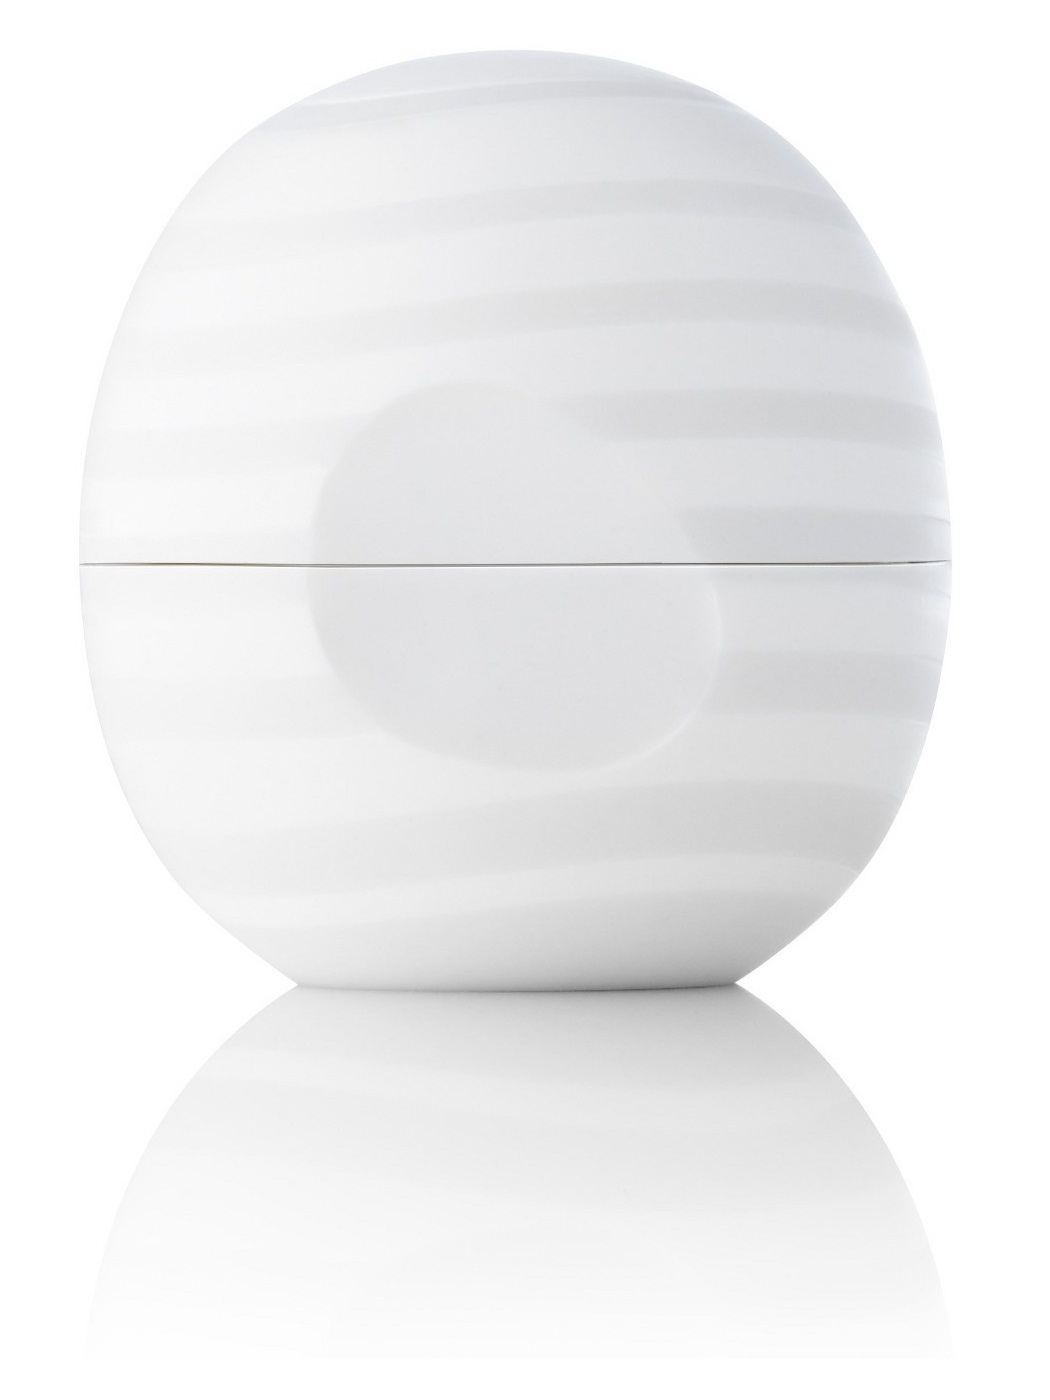 EOS Visibly Soft Smooth Sphere Lip Balm - Pure Hydration (Neutral Flavor).jpg